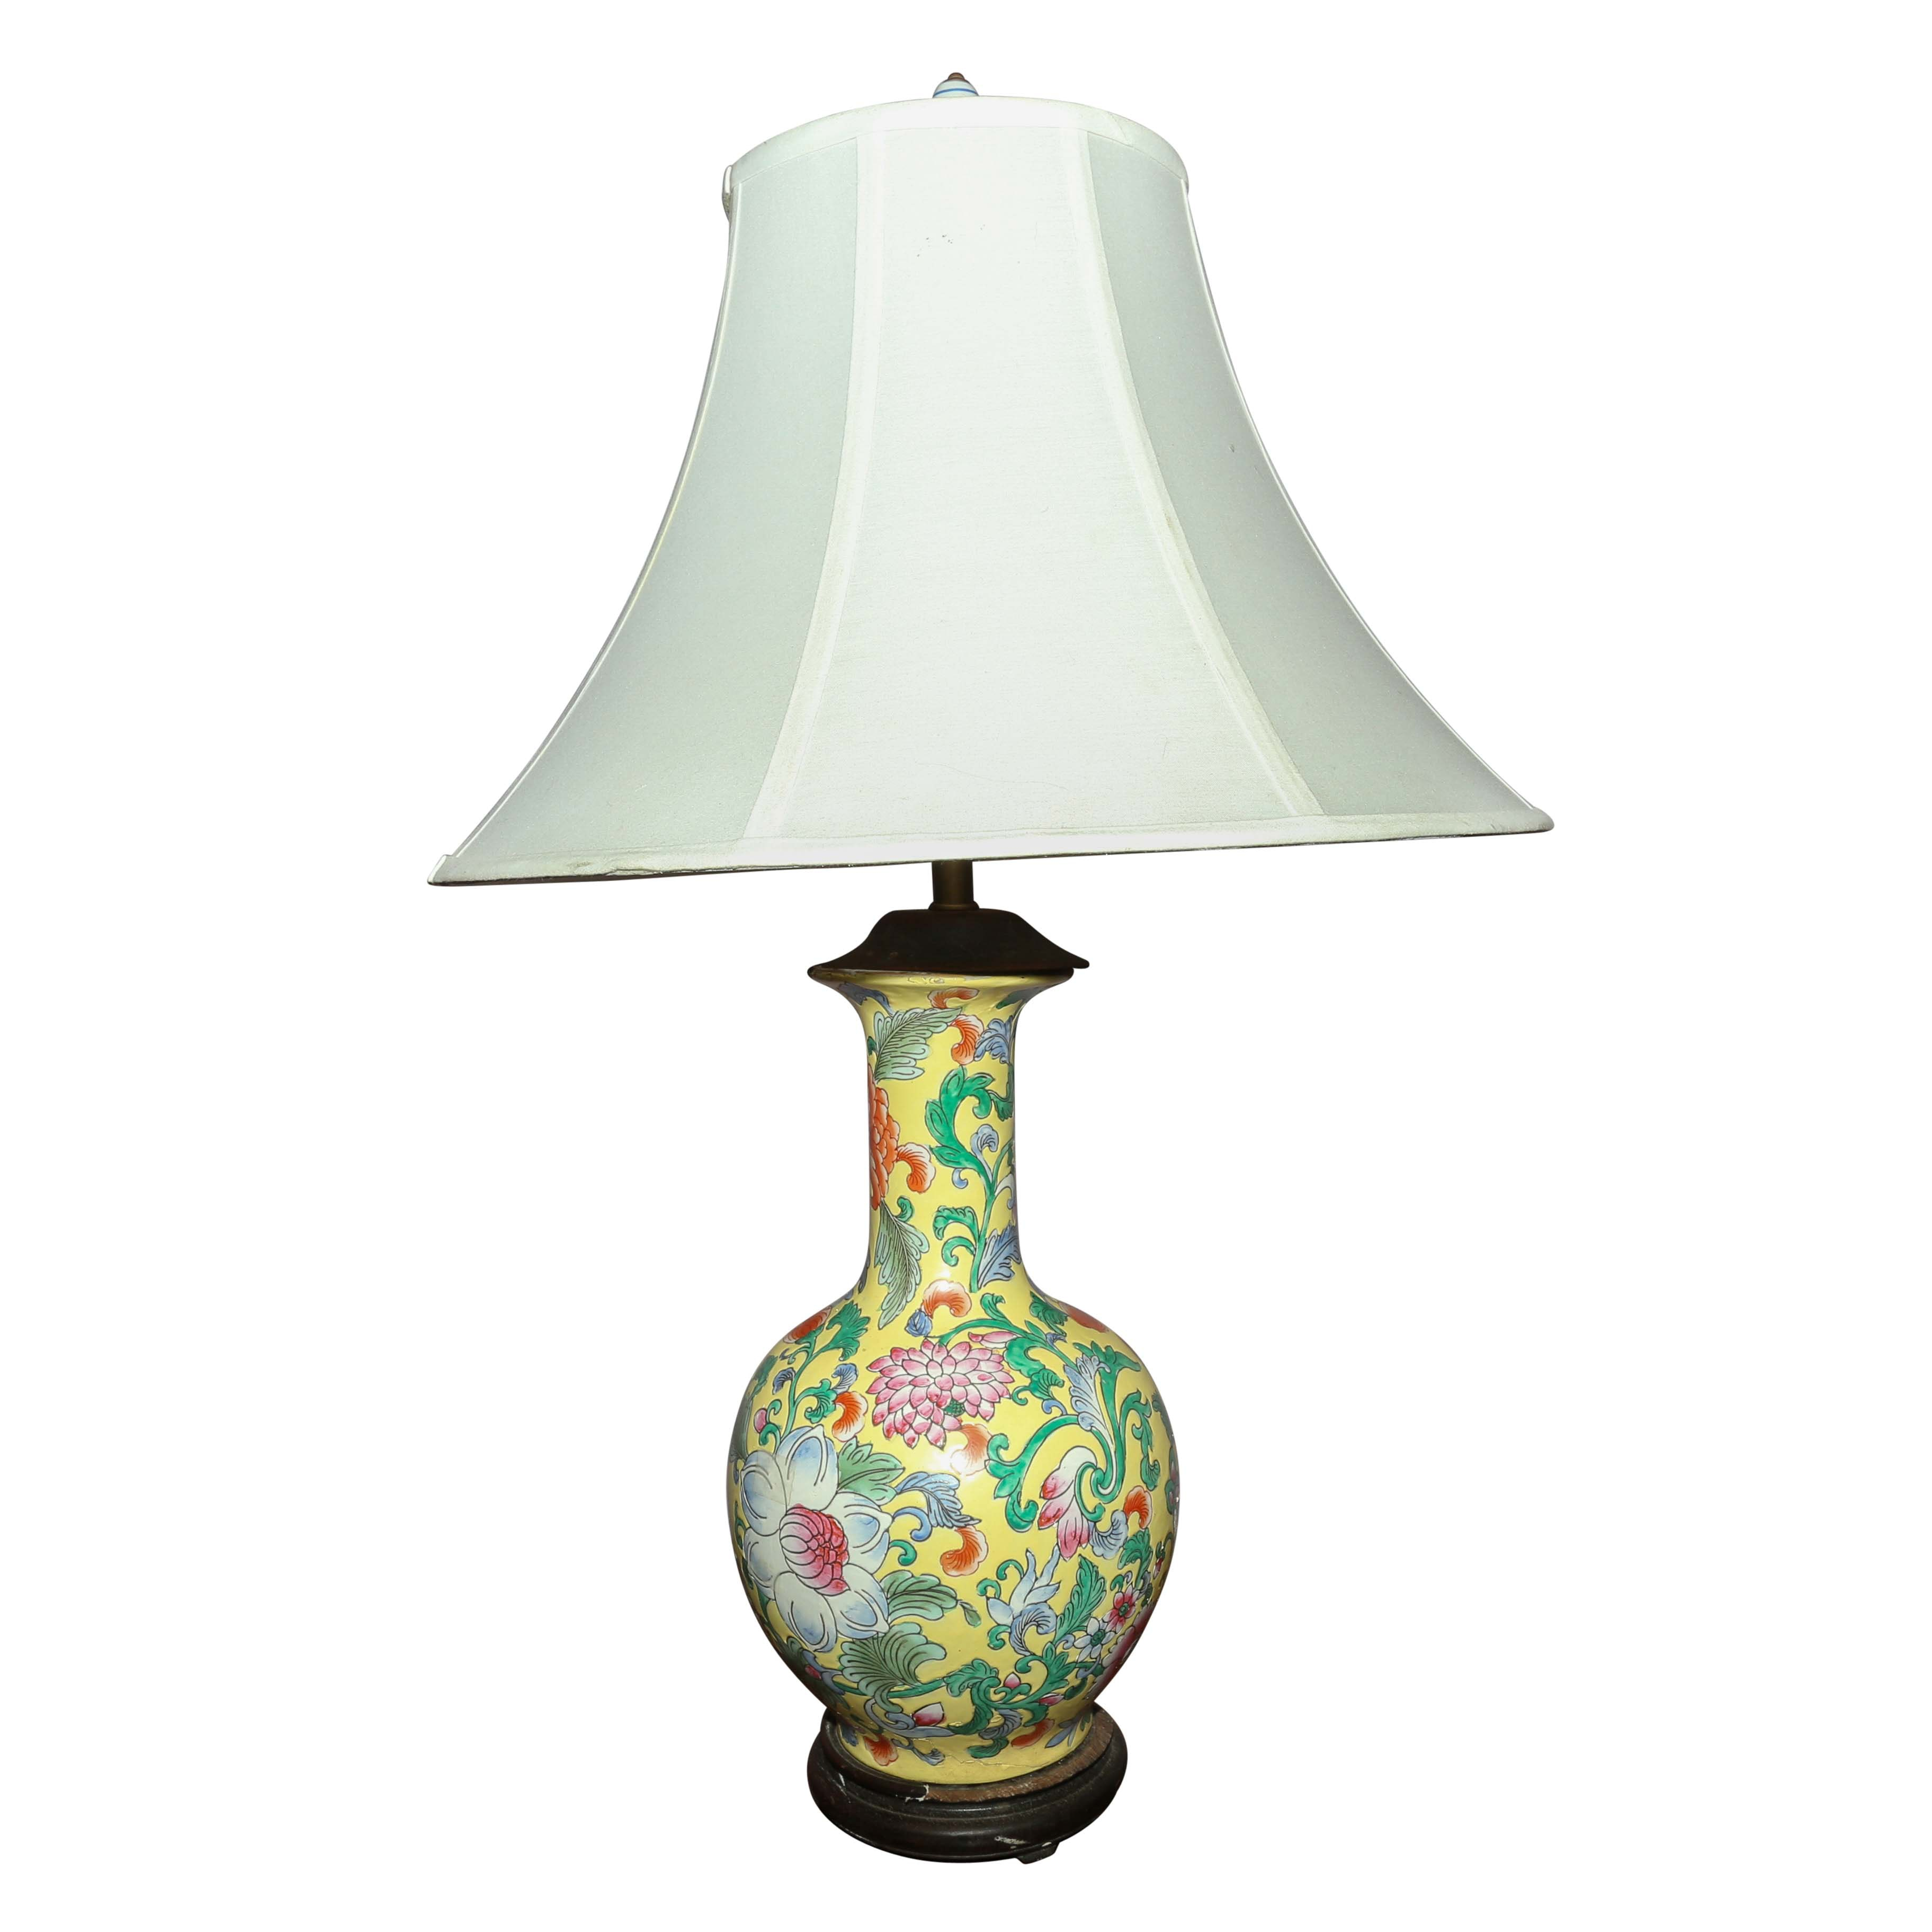 Chinese Hand-Painted Porcelain Vase Table Lamp